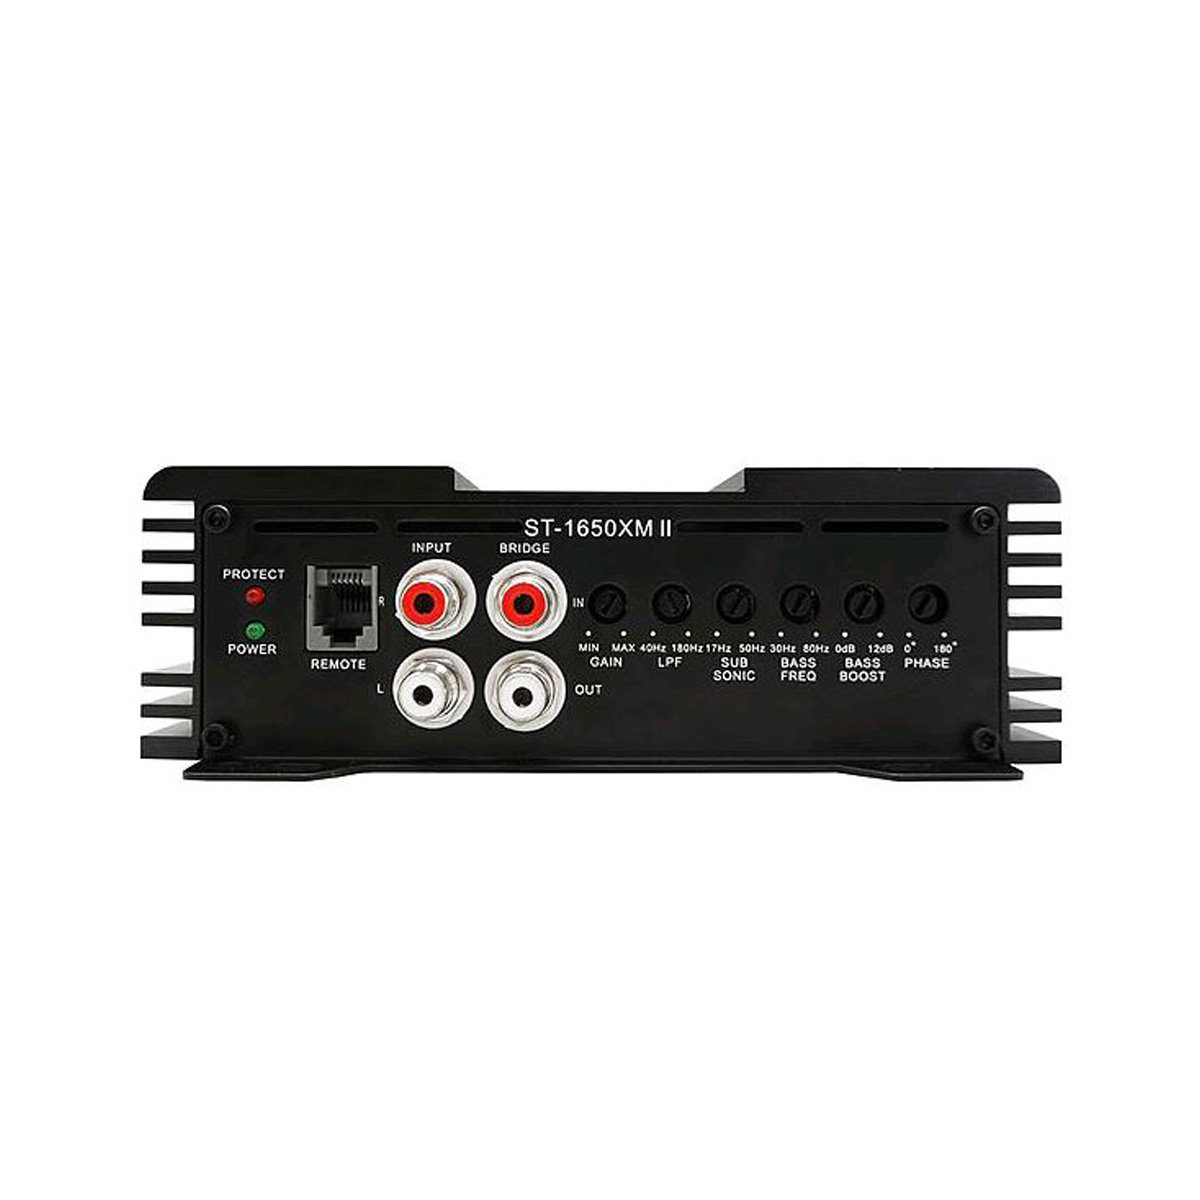 zapco amp wiring diagram wiring library multiple amplifier wiring diagram zapco st 1650xmii class d 1100 watts @ 2 ohms monoblock amplifier dual car amp wiring